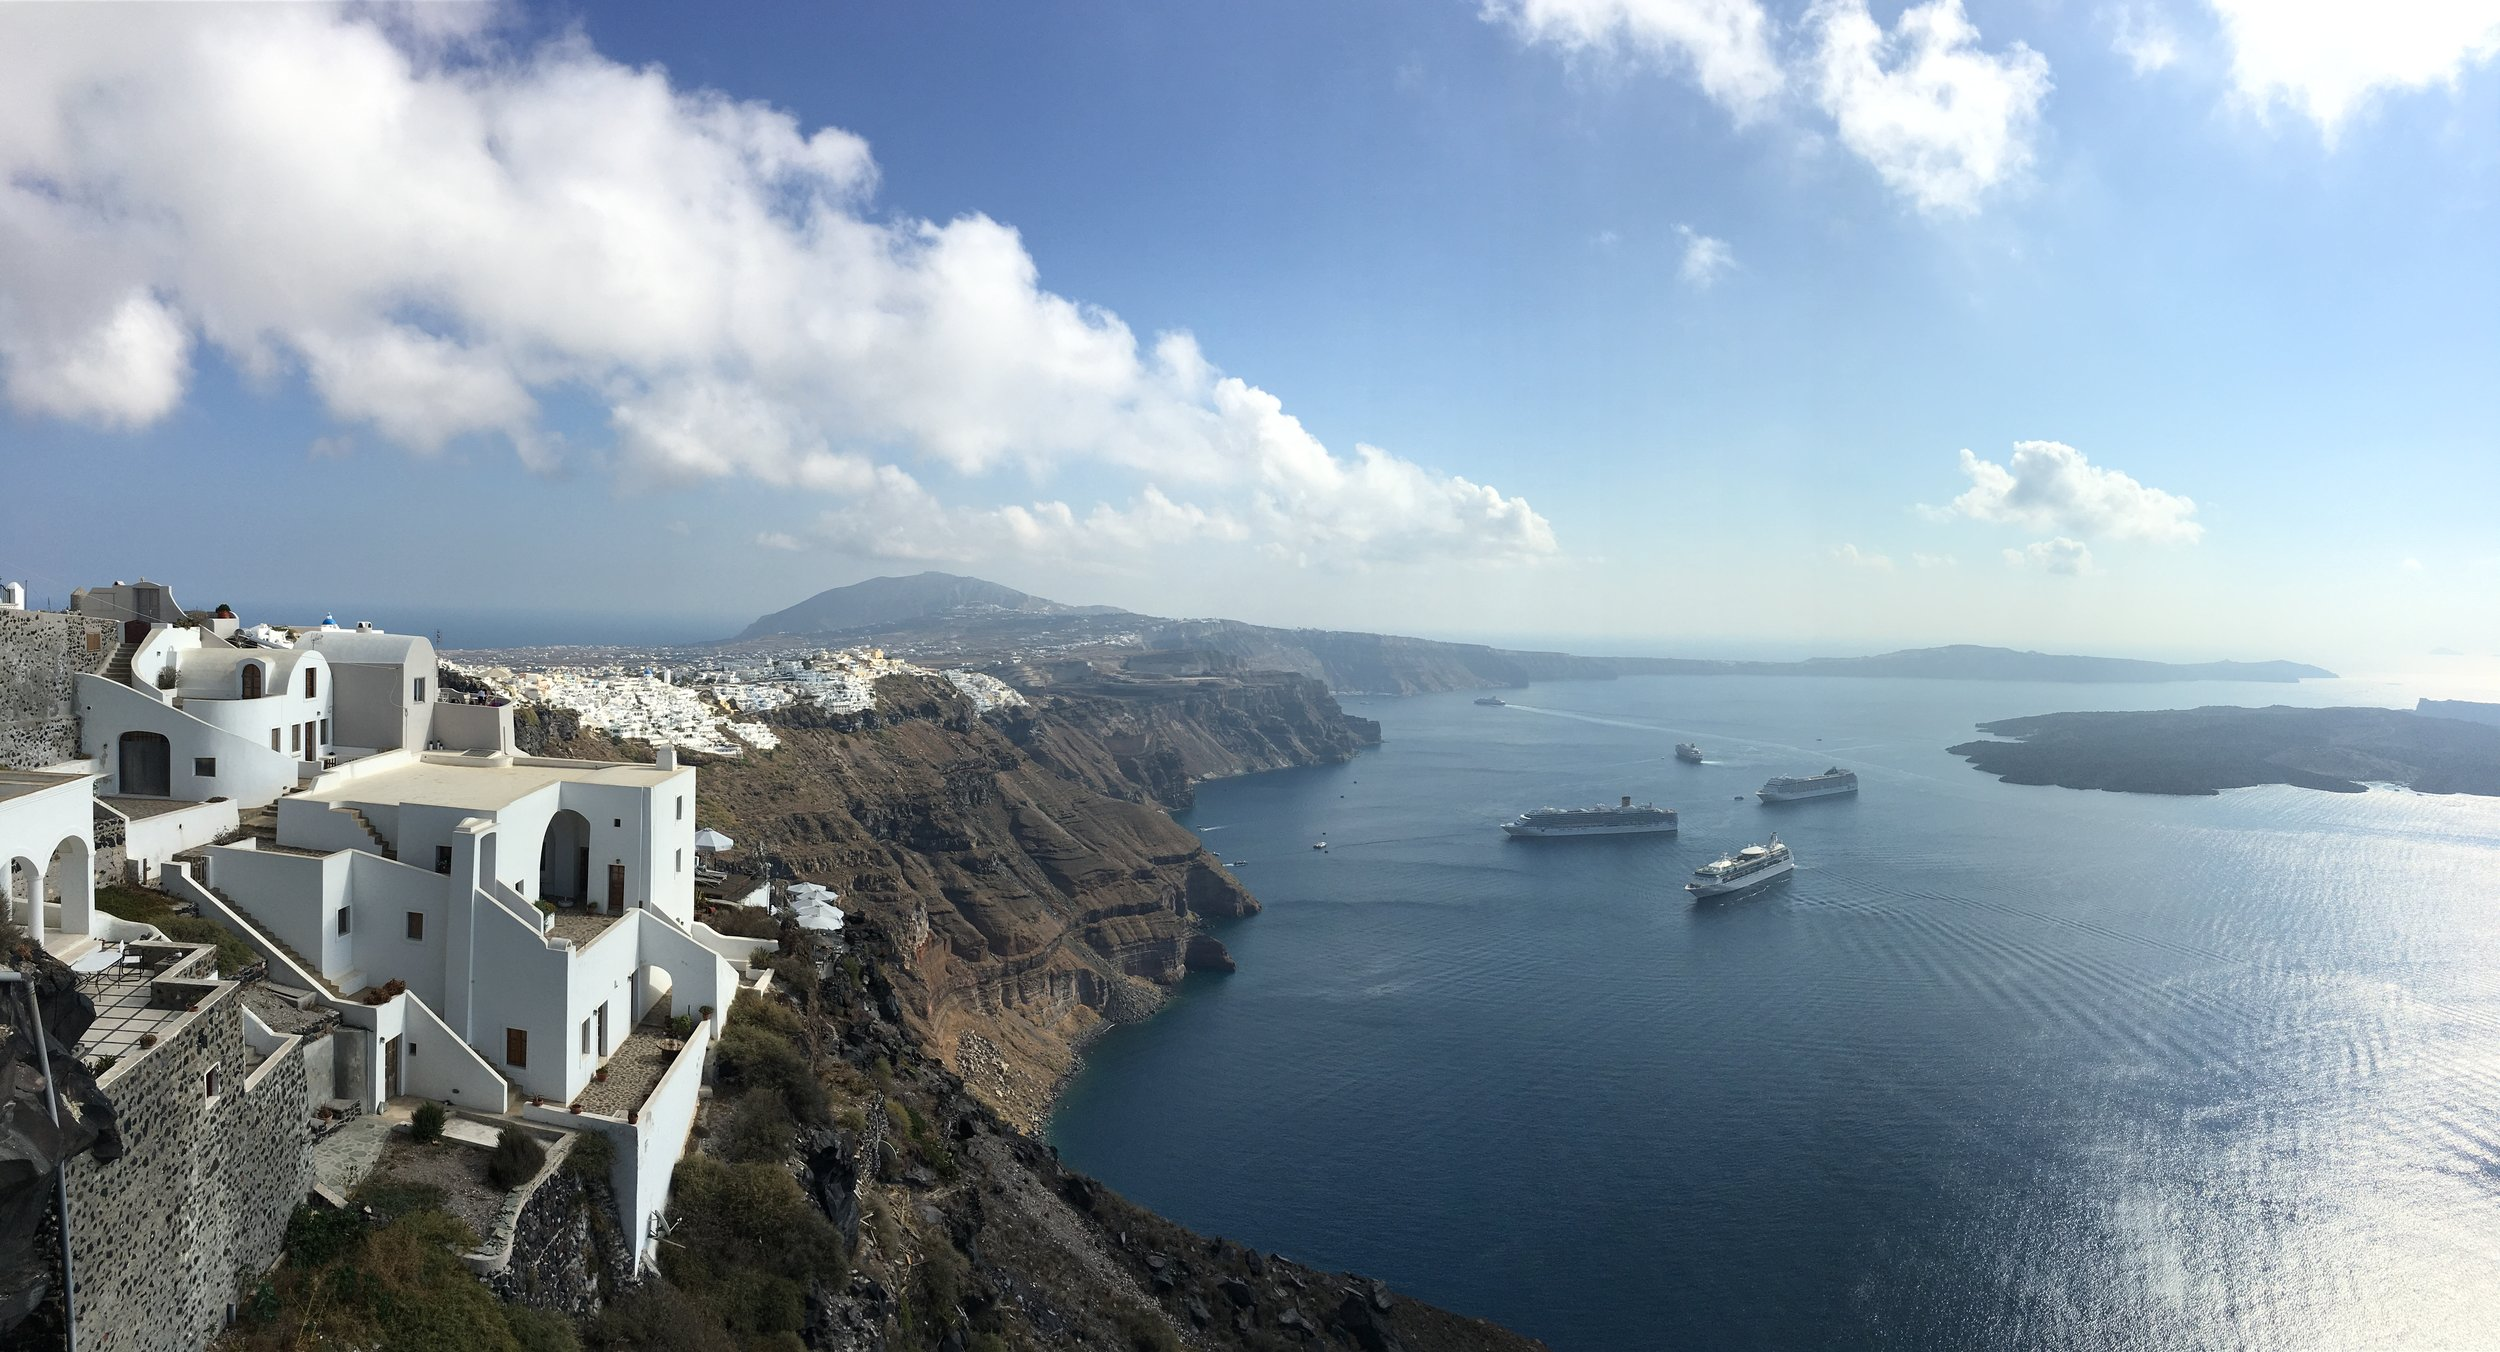 Fira from afar (really took my breath away in person)